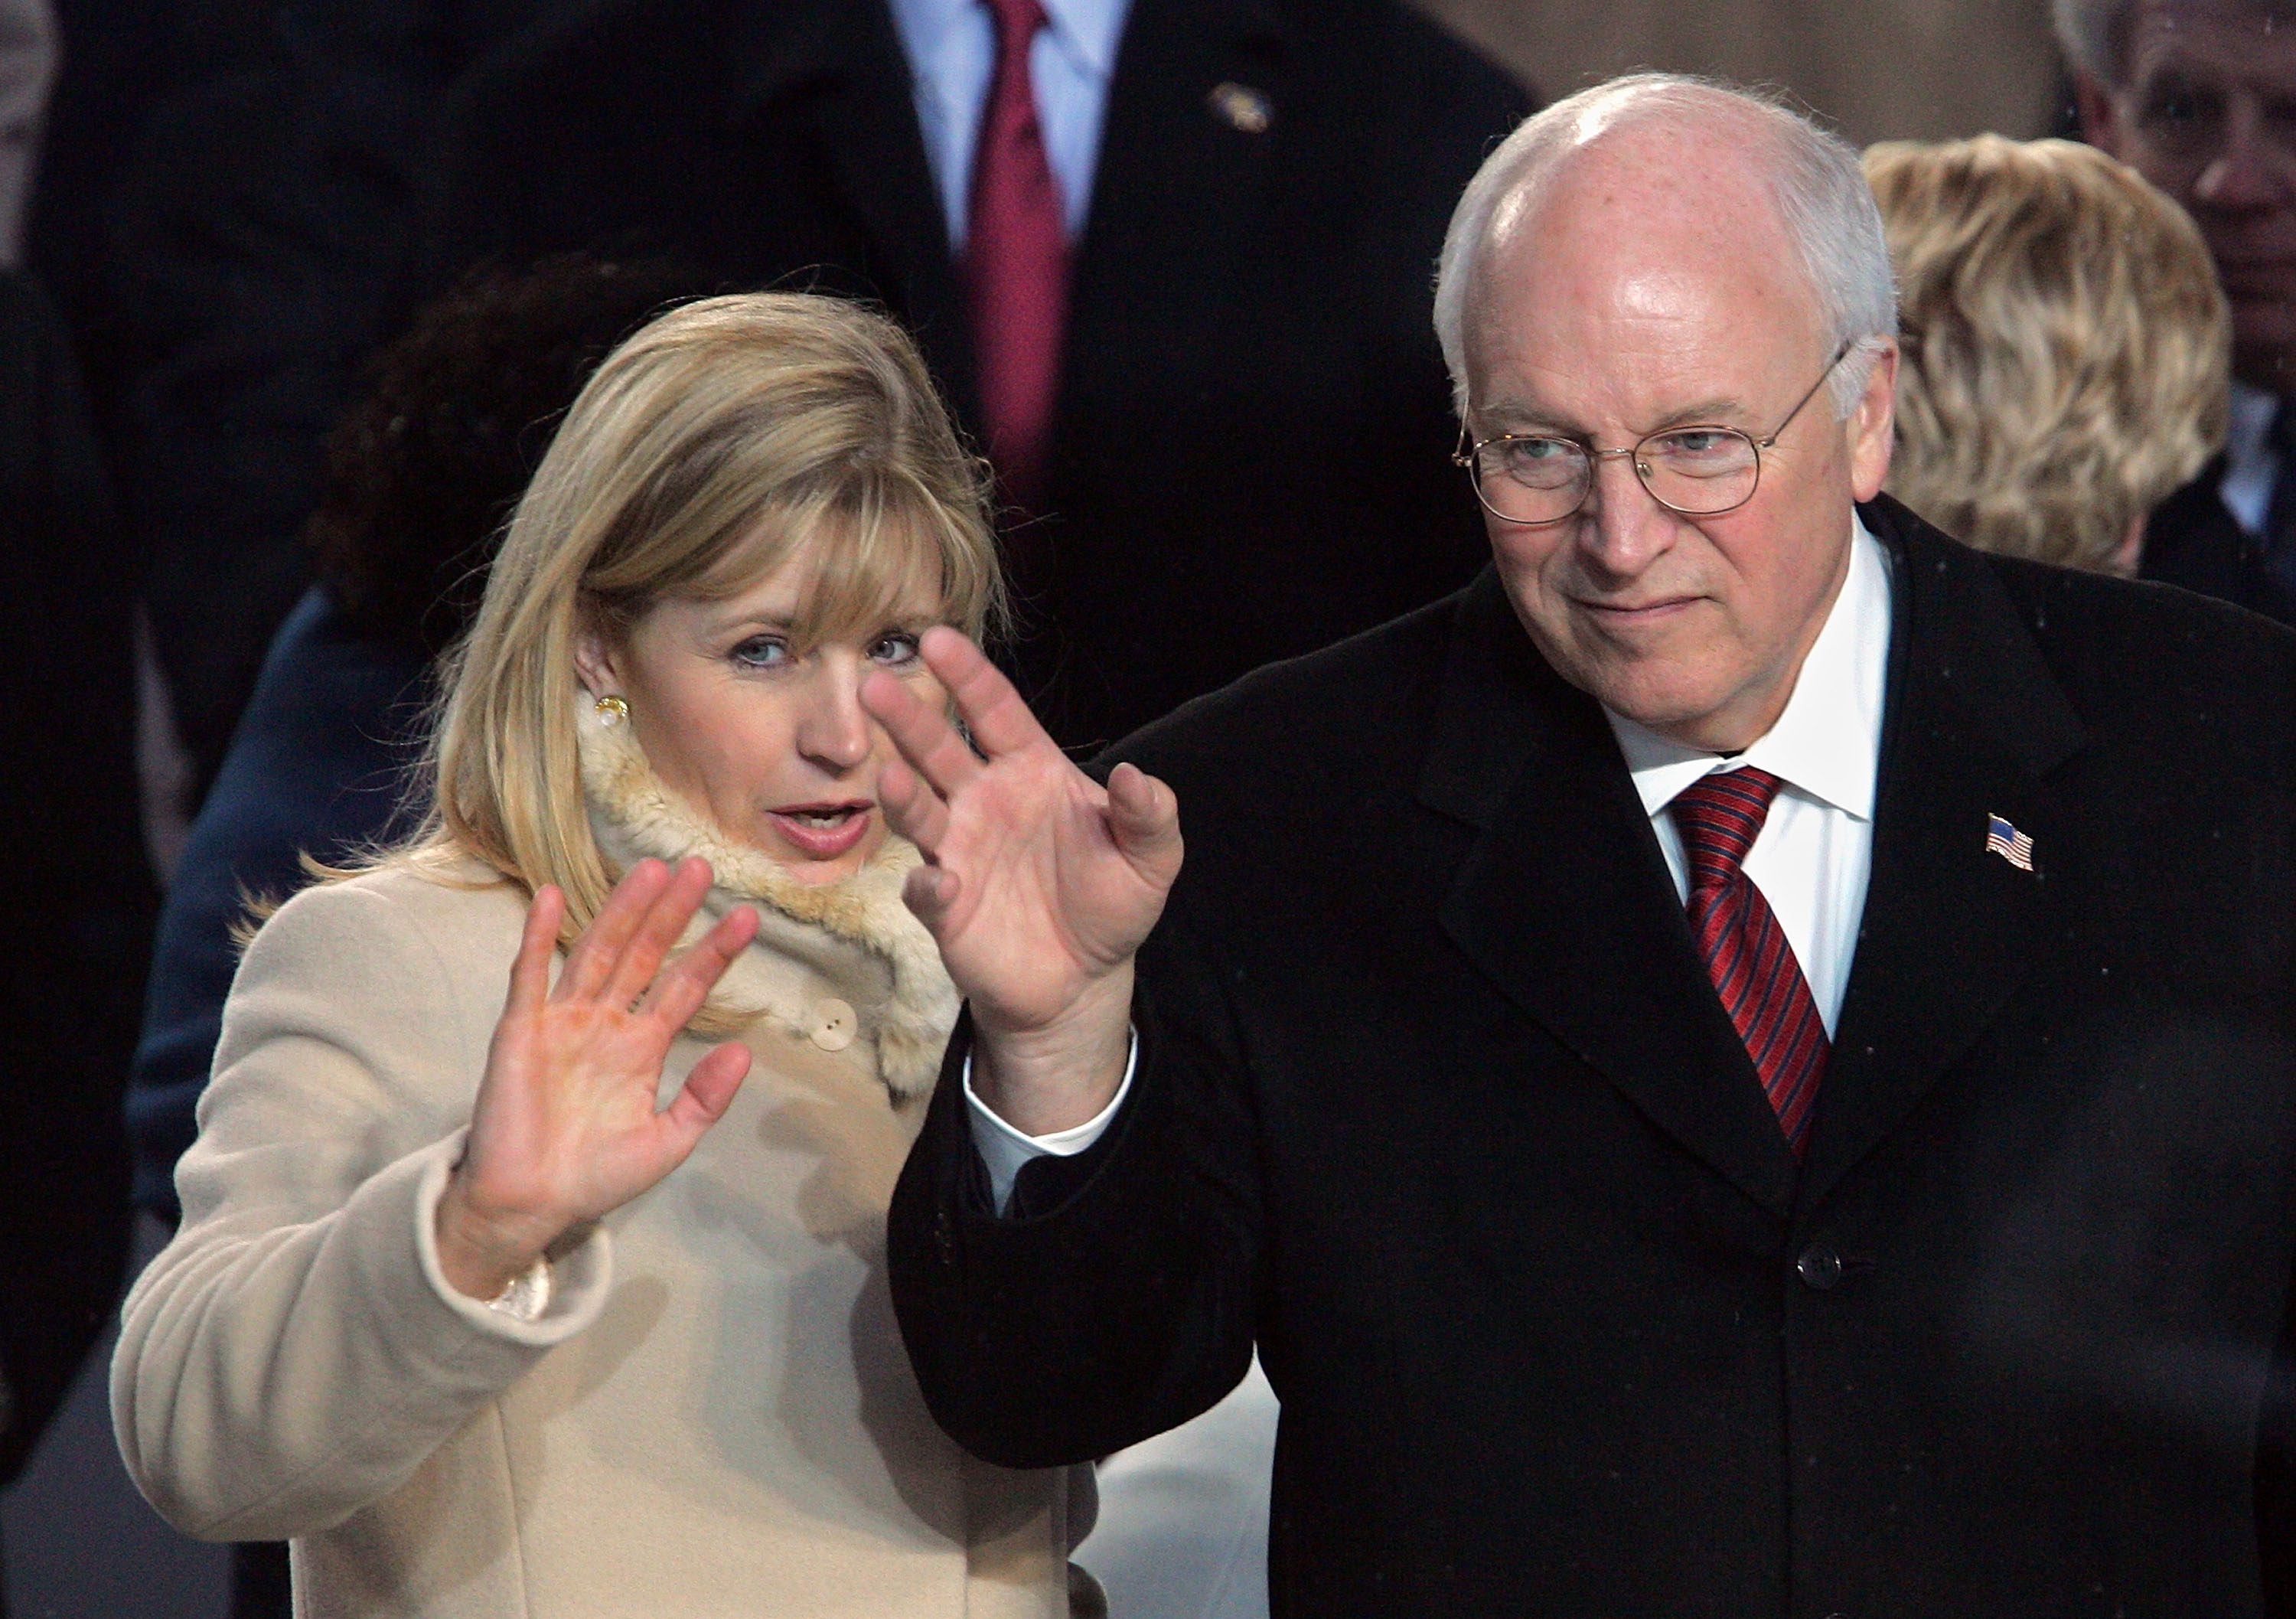 For Cheney, career in politics was pedigreed from an early age: 'It's in my blood'